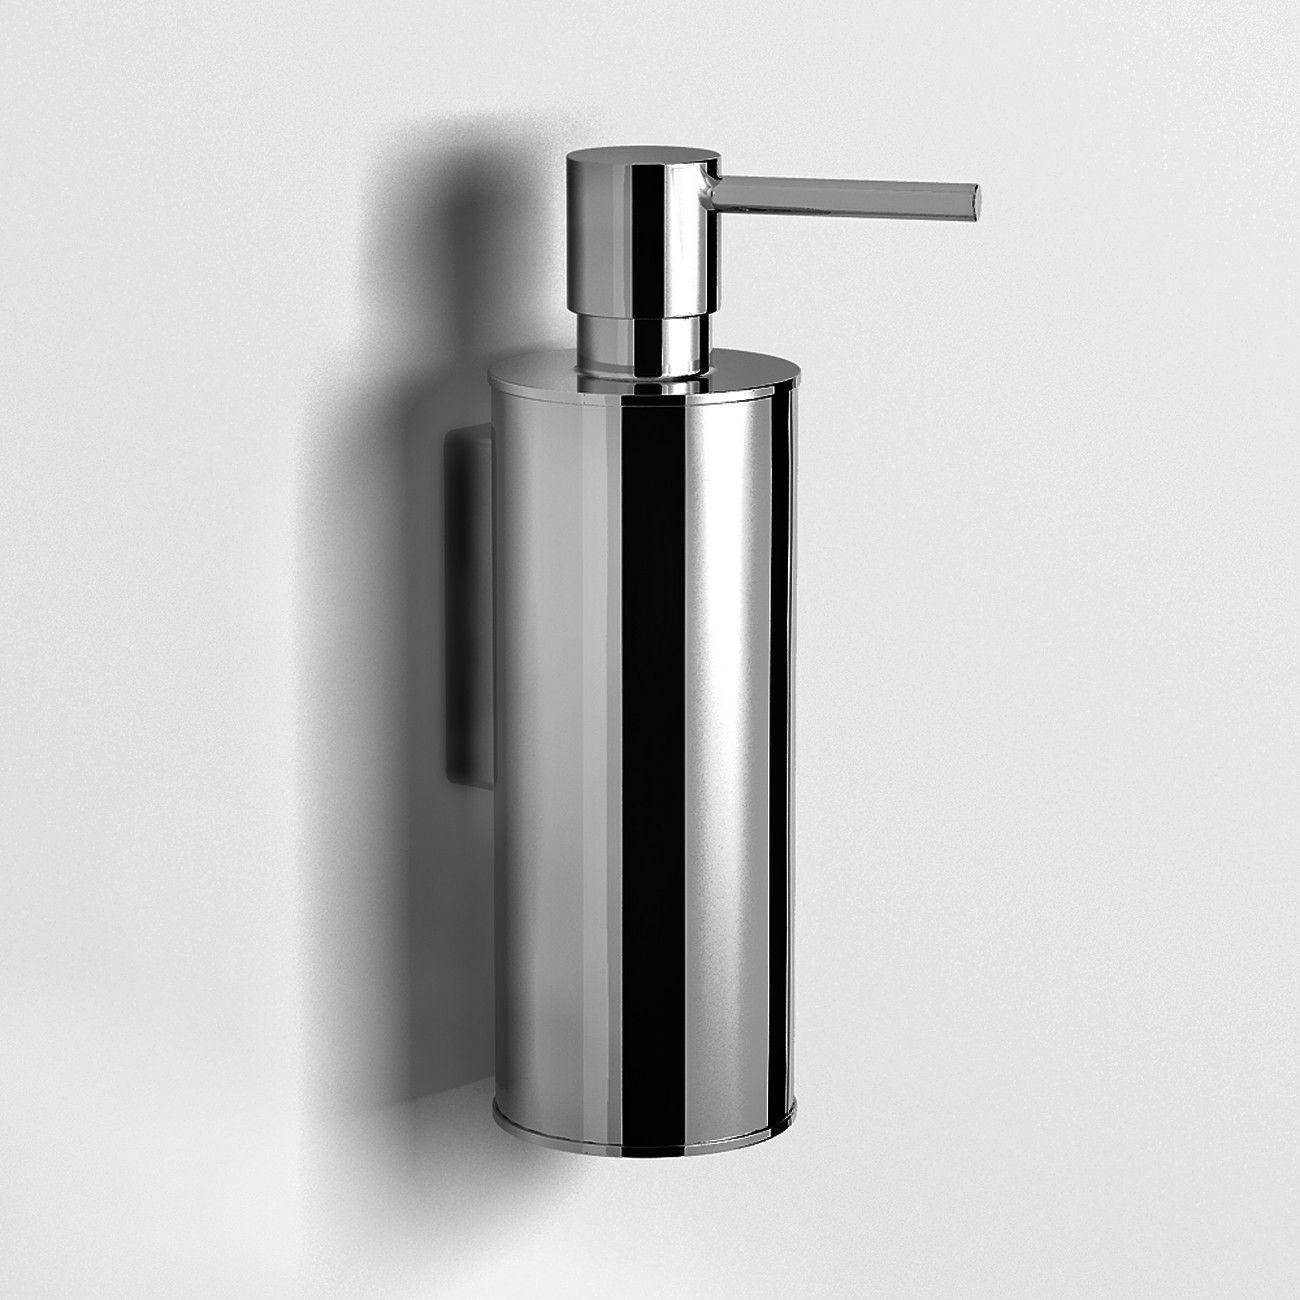 Awesome Myhill Wall Mounted Soap Dispenser   Deisgner Bathroom Accessories    Rogerseller